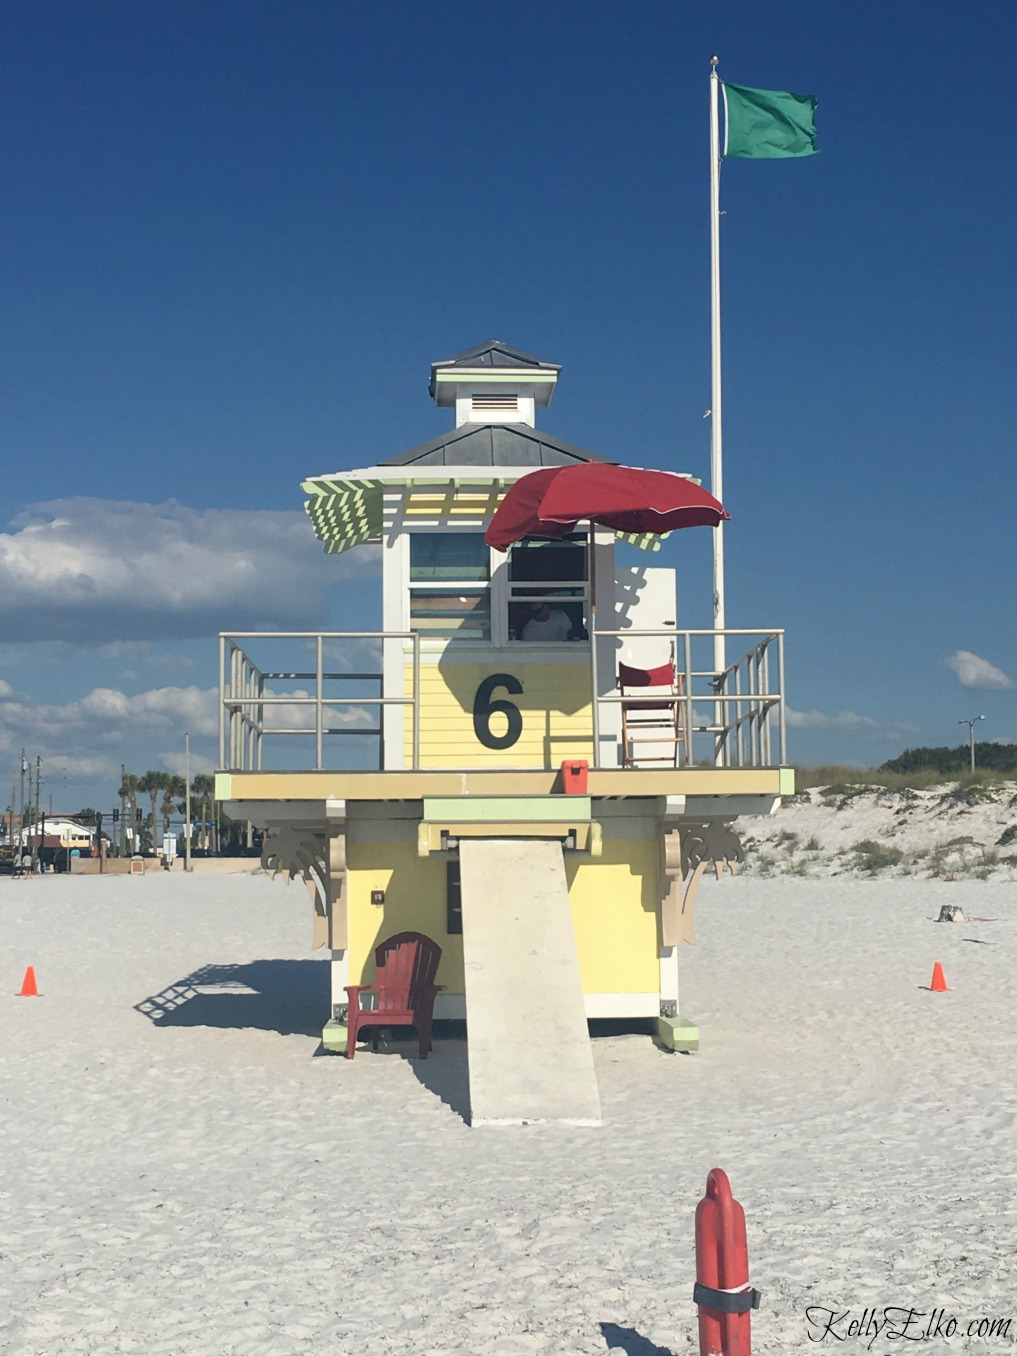 Clearwater Beach lifeguard stand kellyelko.com